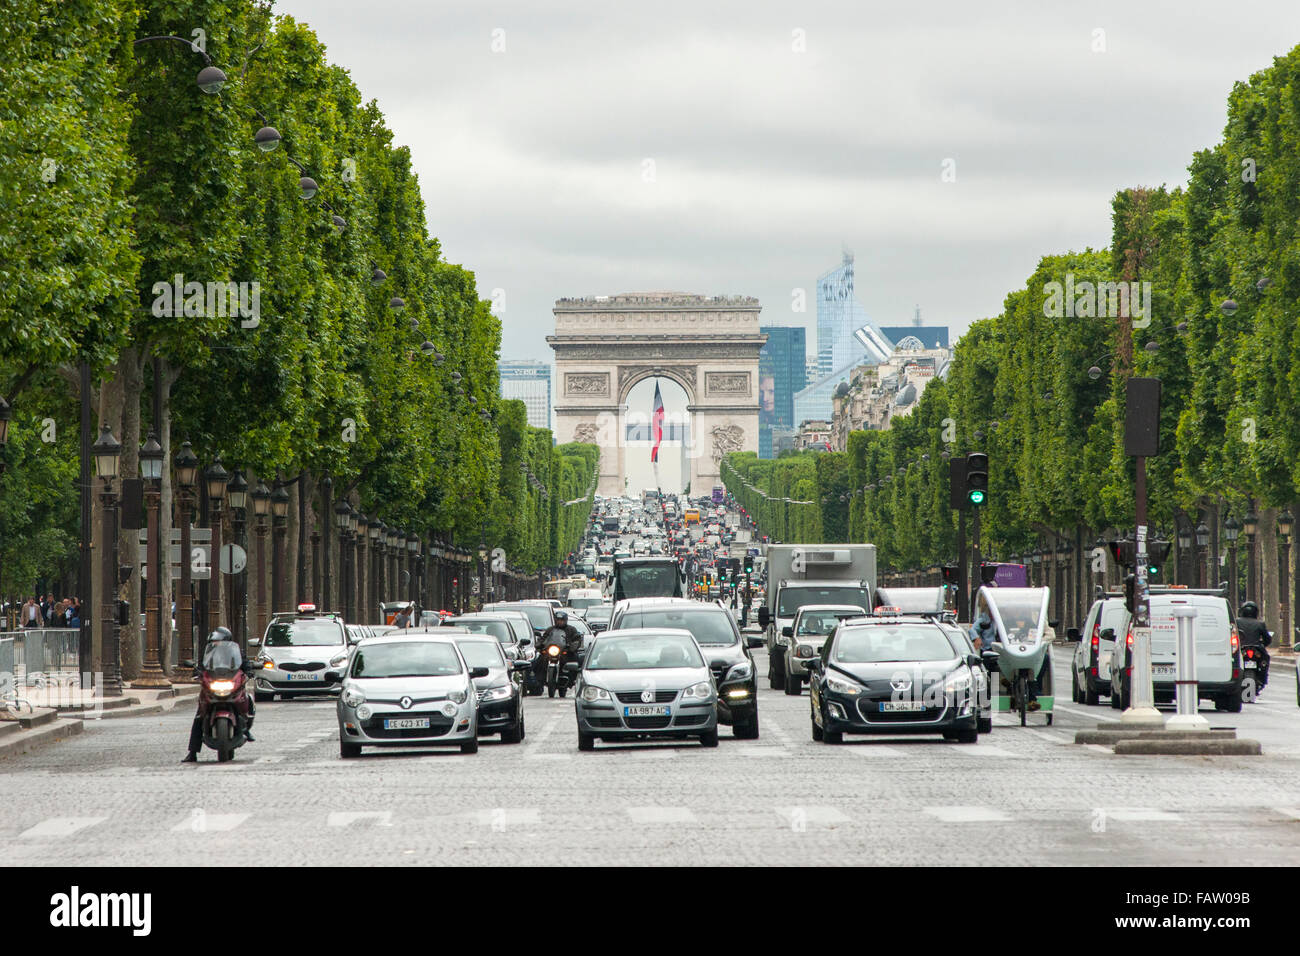 View up the Avenue des Champs Élysées looking towards the Arc De Triomphe in Paris. - Stock Image